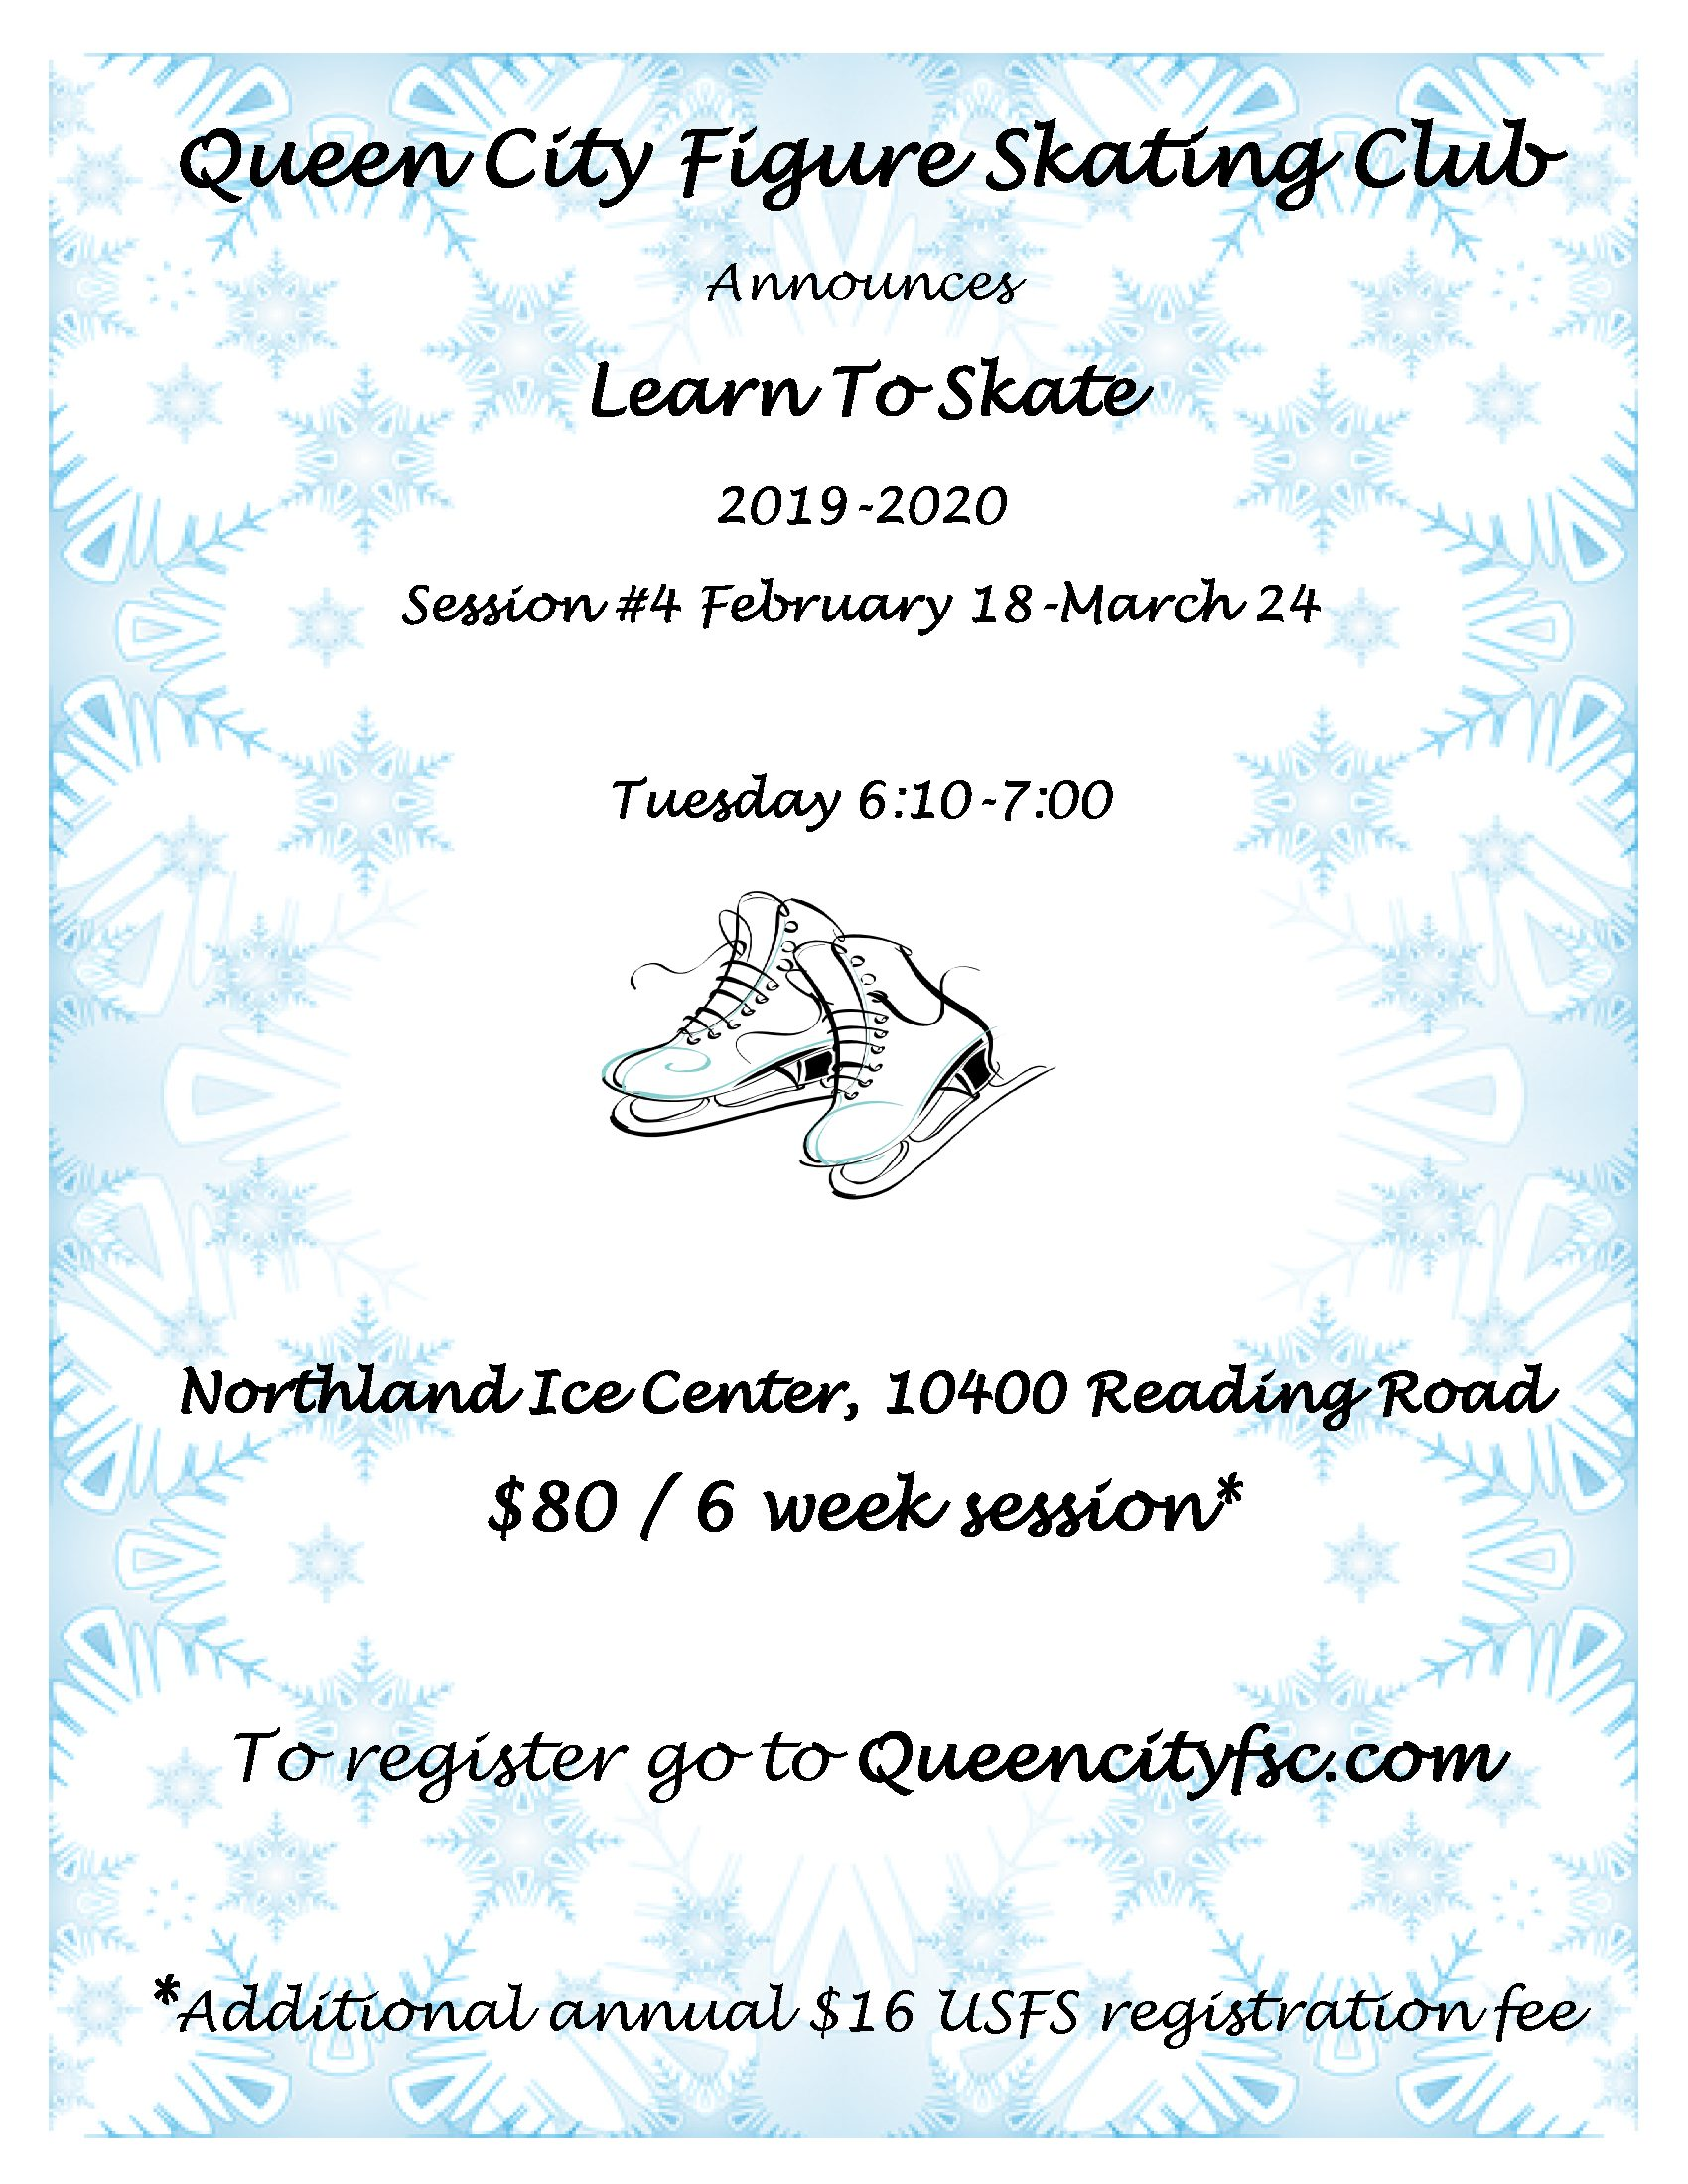 Queen City FSC Learn To Skate 2019-2020 Session #4 Flyer